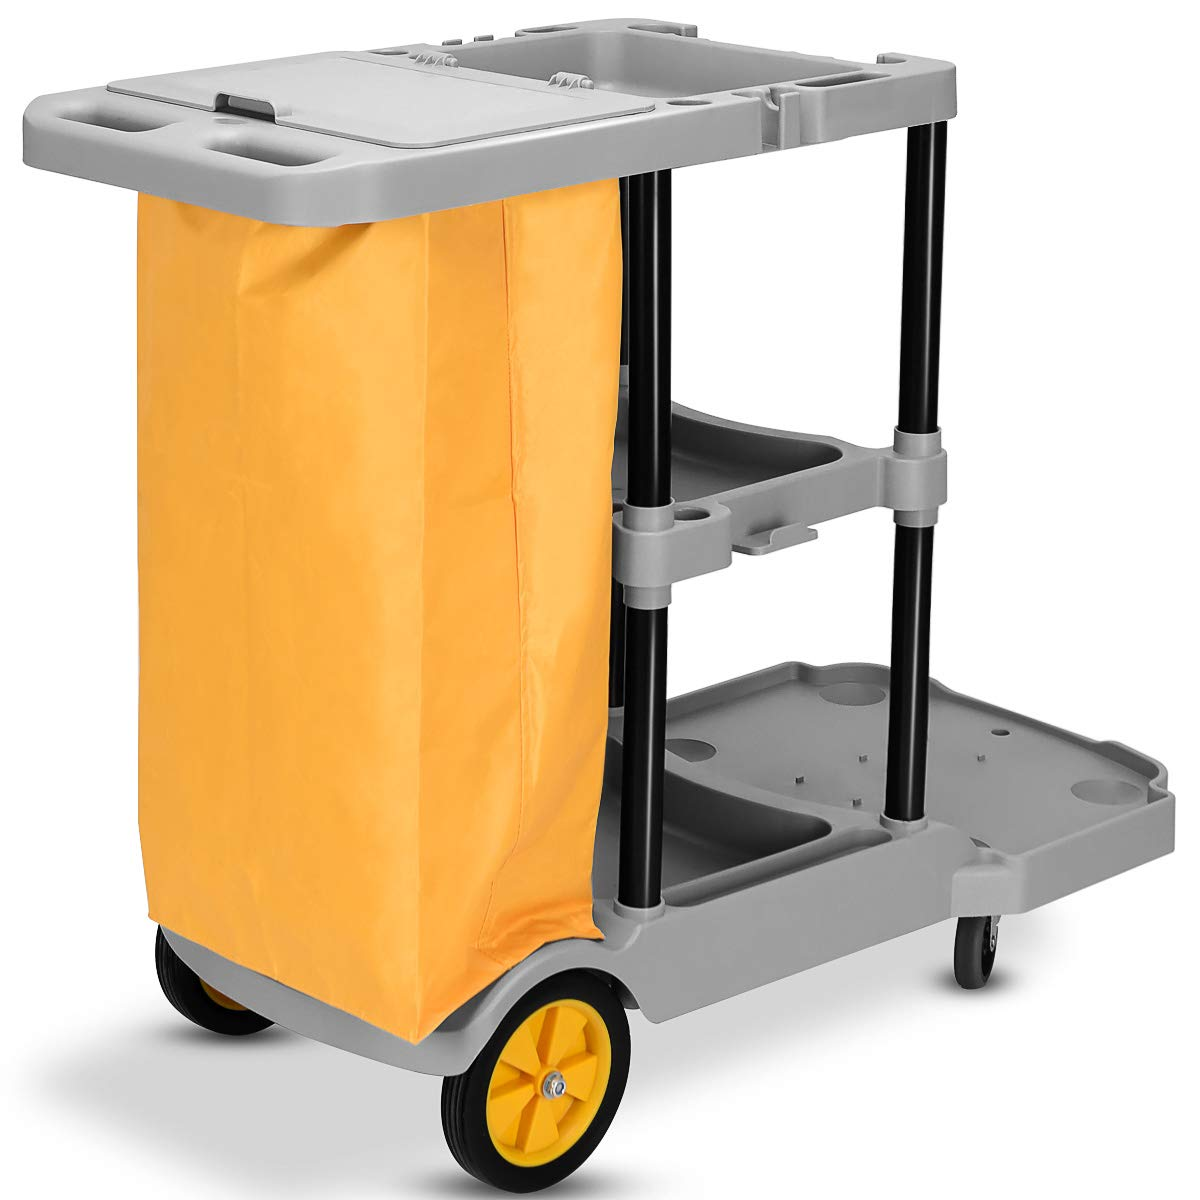 Goplus Commercial Janitorial Cart Heavy Duty Cleaning Utility Cart Service Cart 3 Shelf Housekeeping Rolling Janitor Cart with 25 Gallon Vinyl Bag, 330lbs Capacity